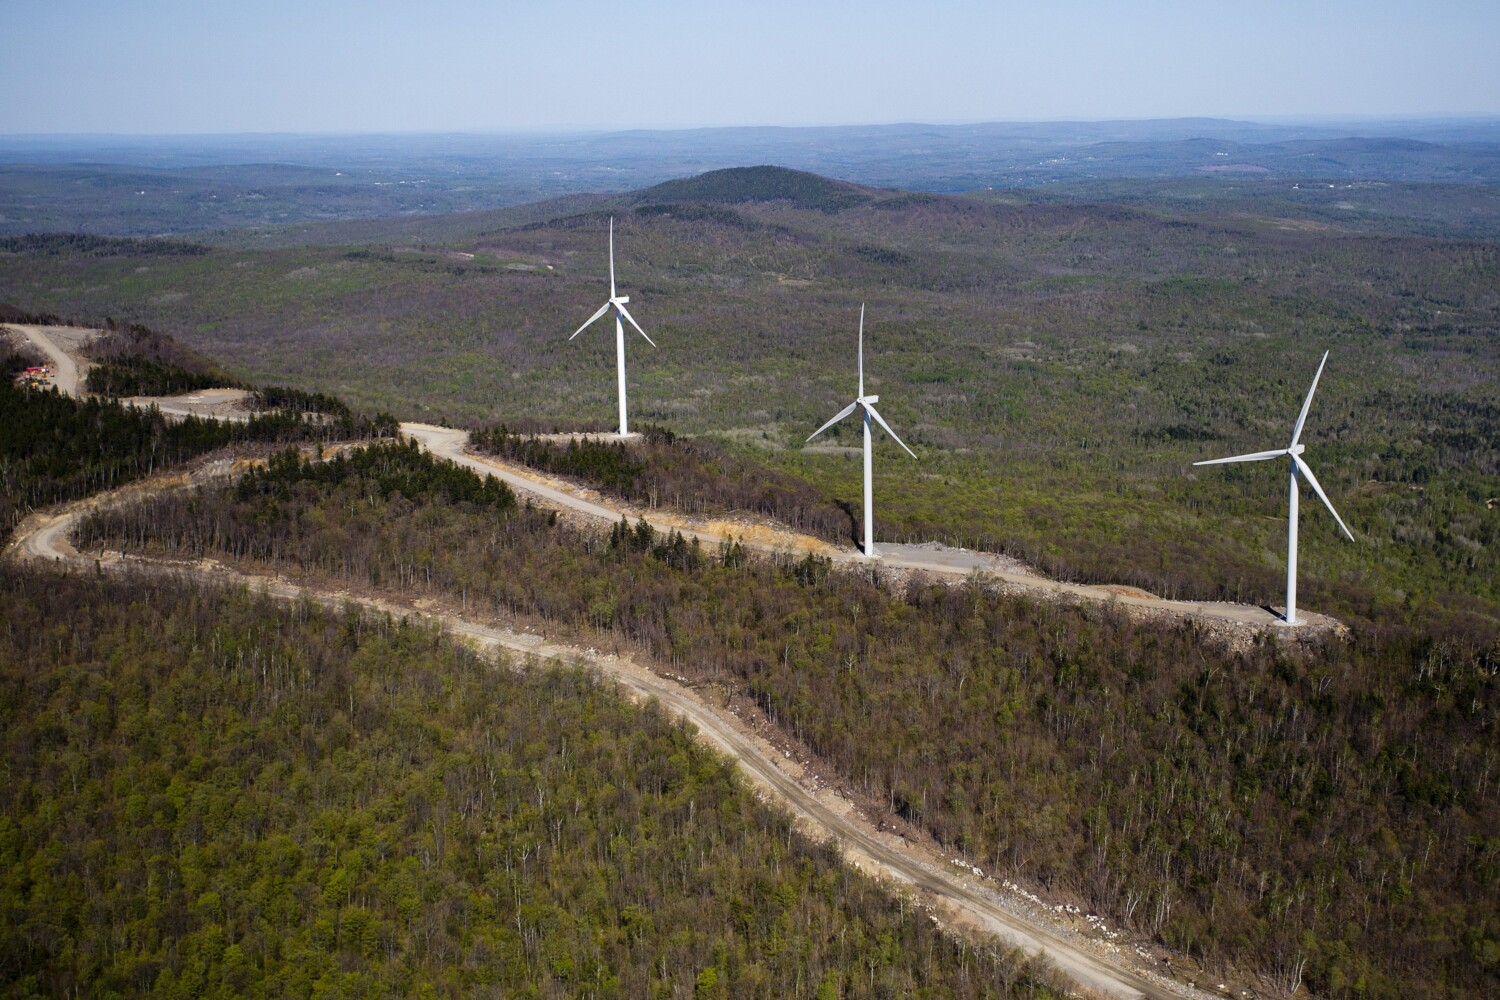 Maine eyed for project that converts electricity to storable gas - CentralMaine.com